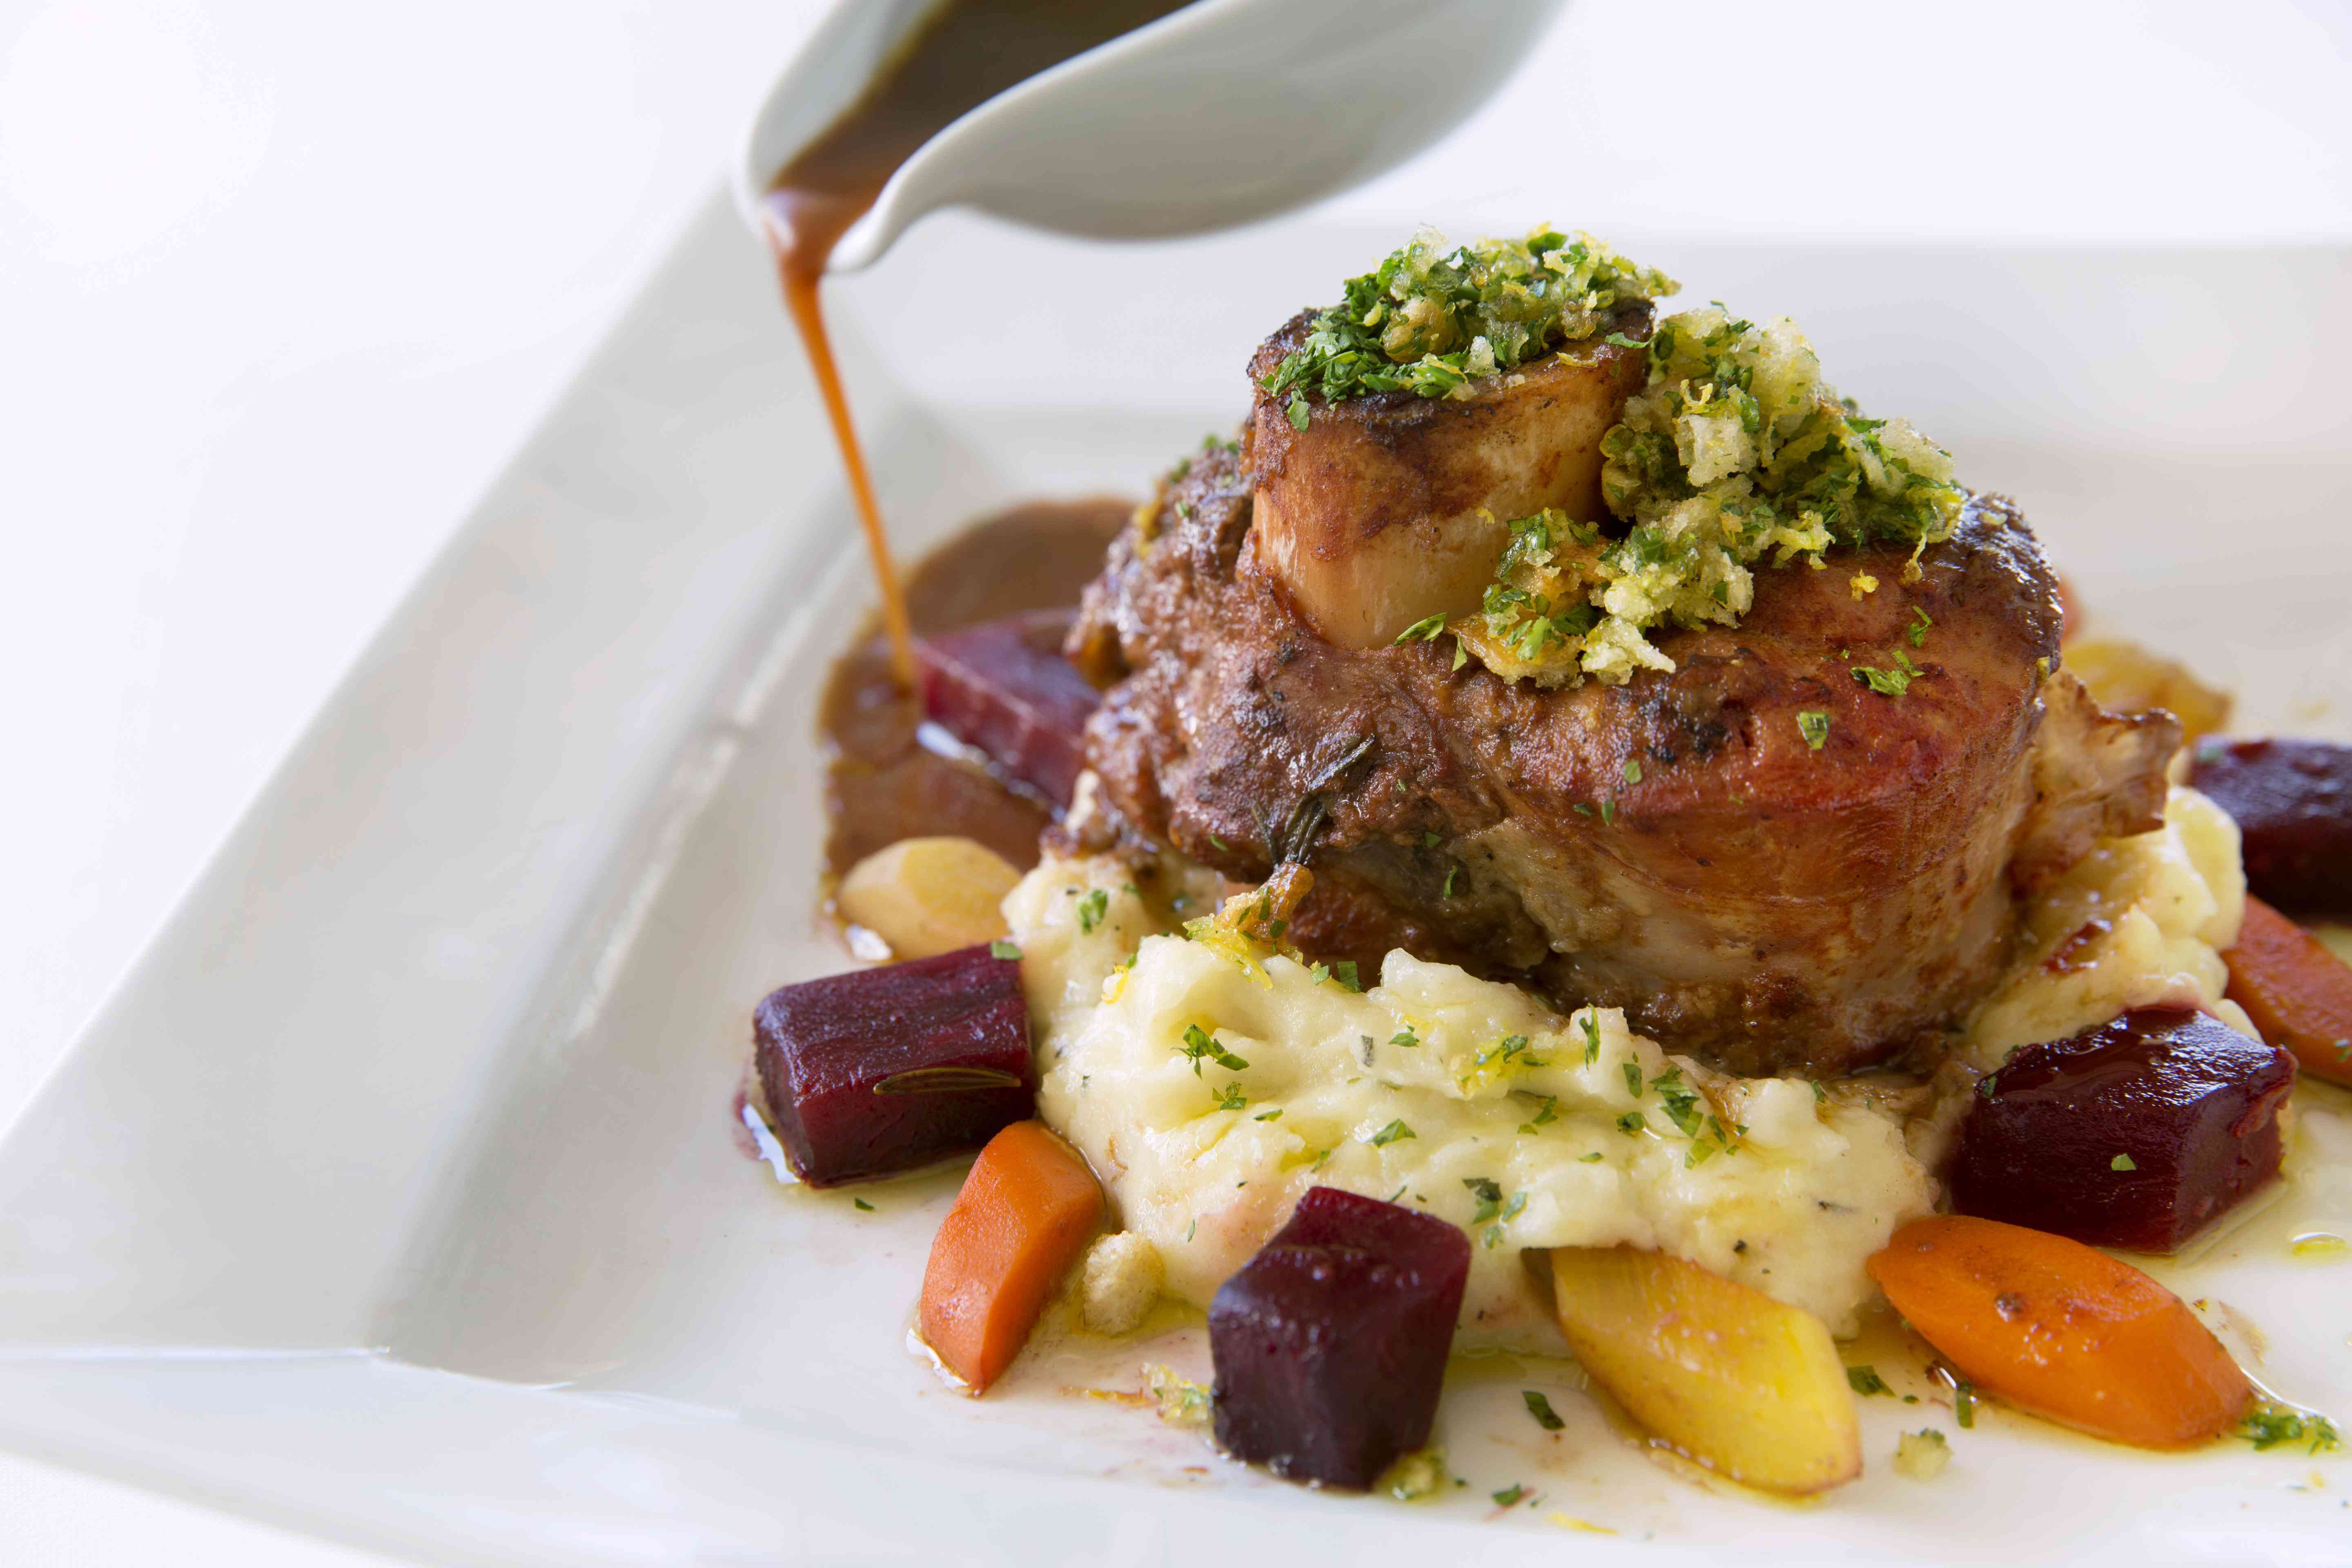 Veal ossobuco on a bed of mashed potatoes, with beets and carrots.